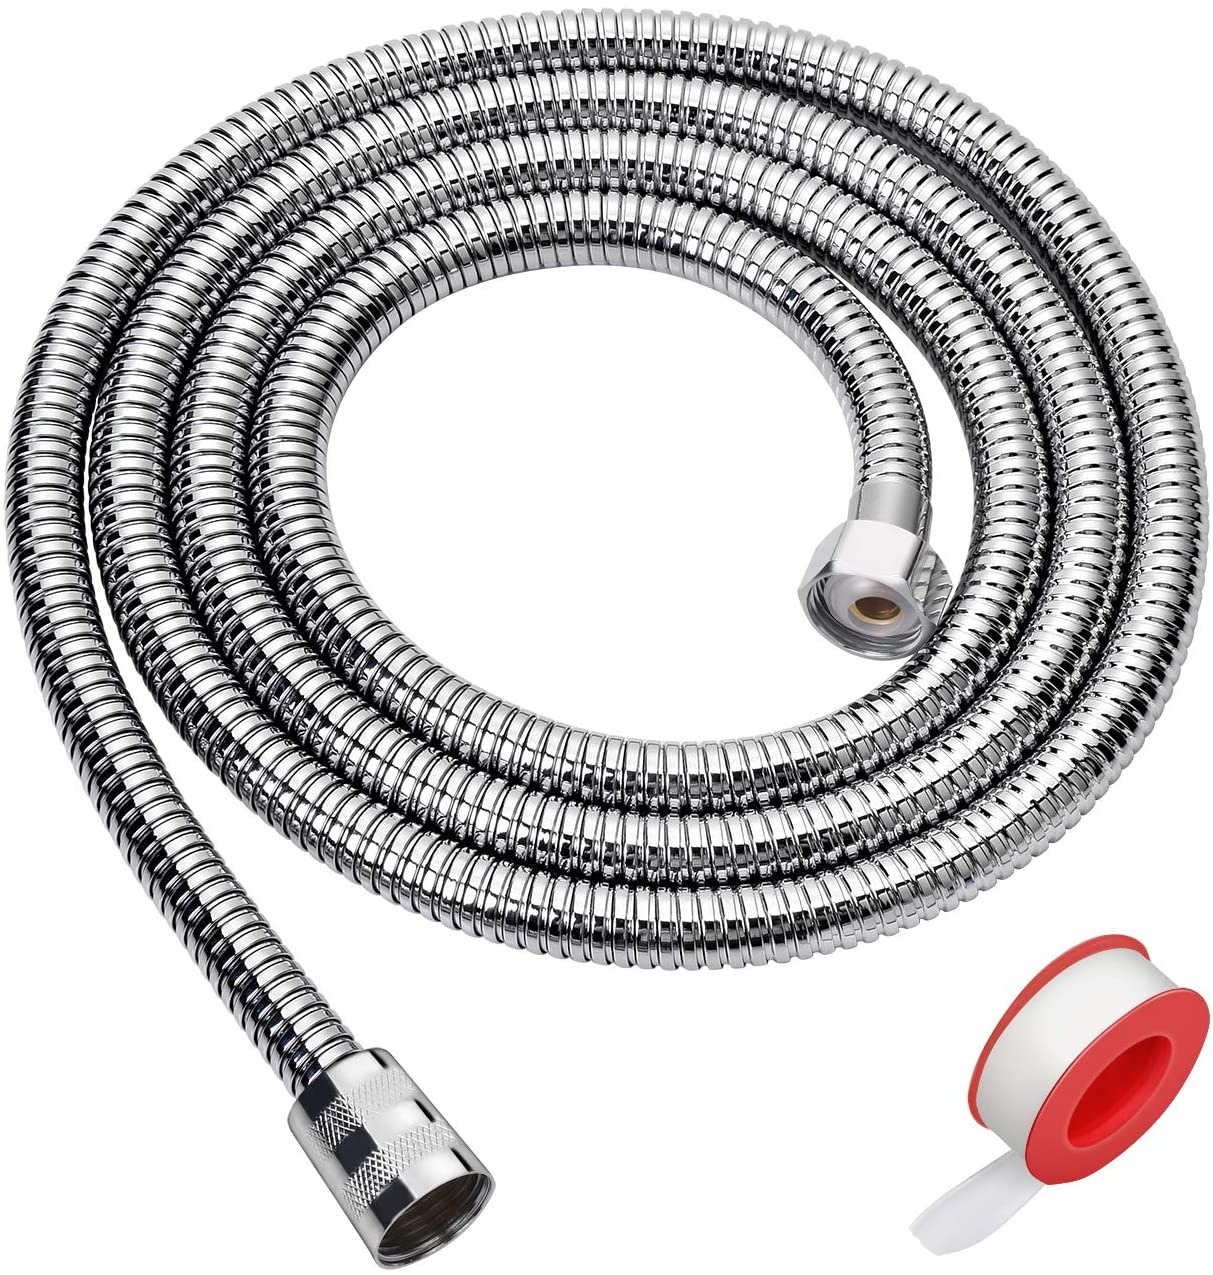 Blissland Shower Hose, 79 Inches Extra Long Chrome Handheld Shower Head Hose with Brass Insert and Nut - Lightweight and Flexible - -